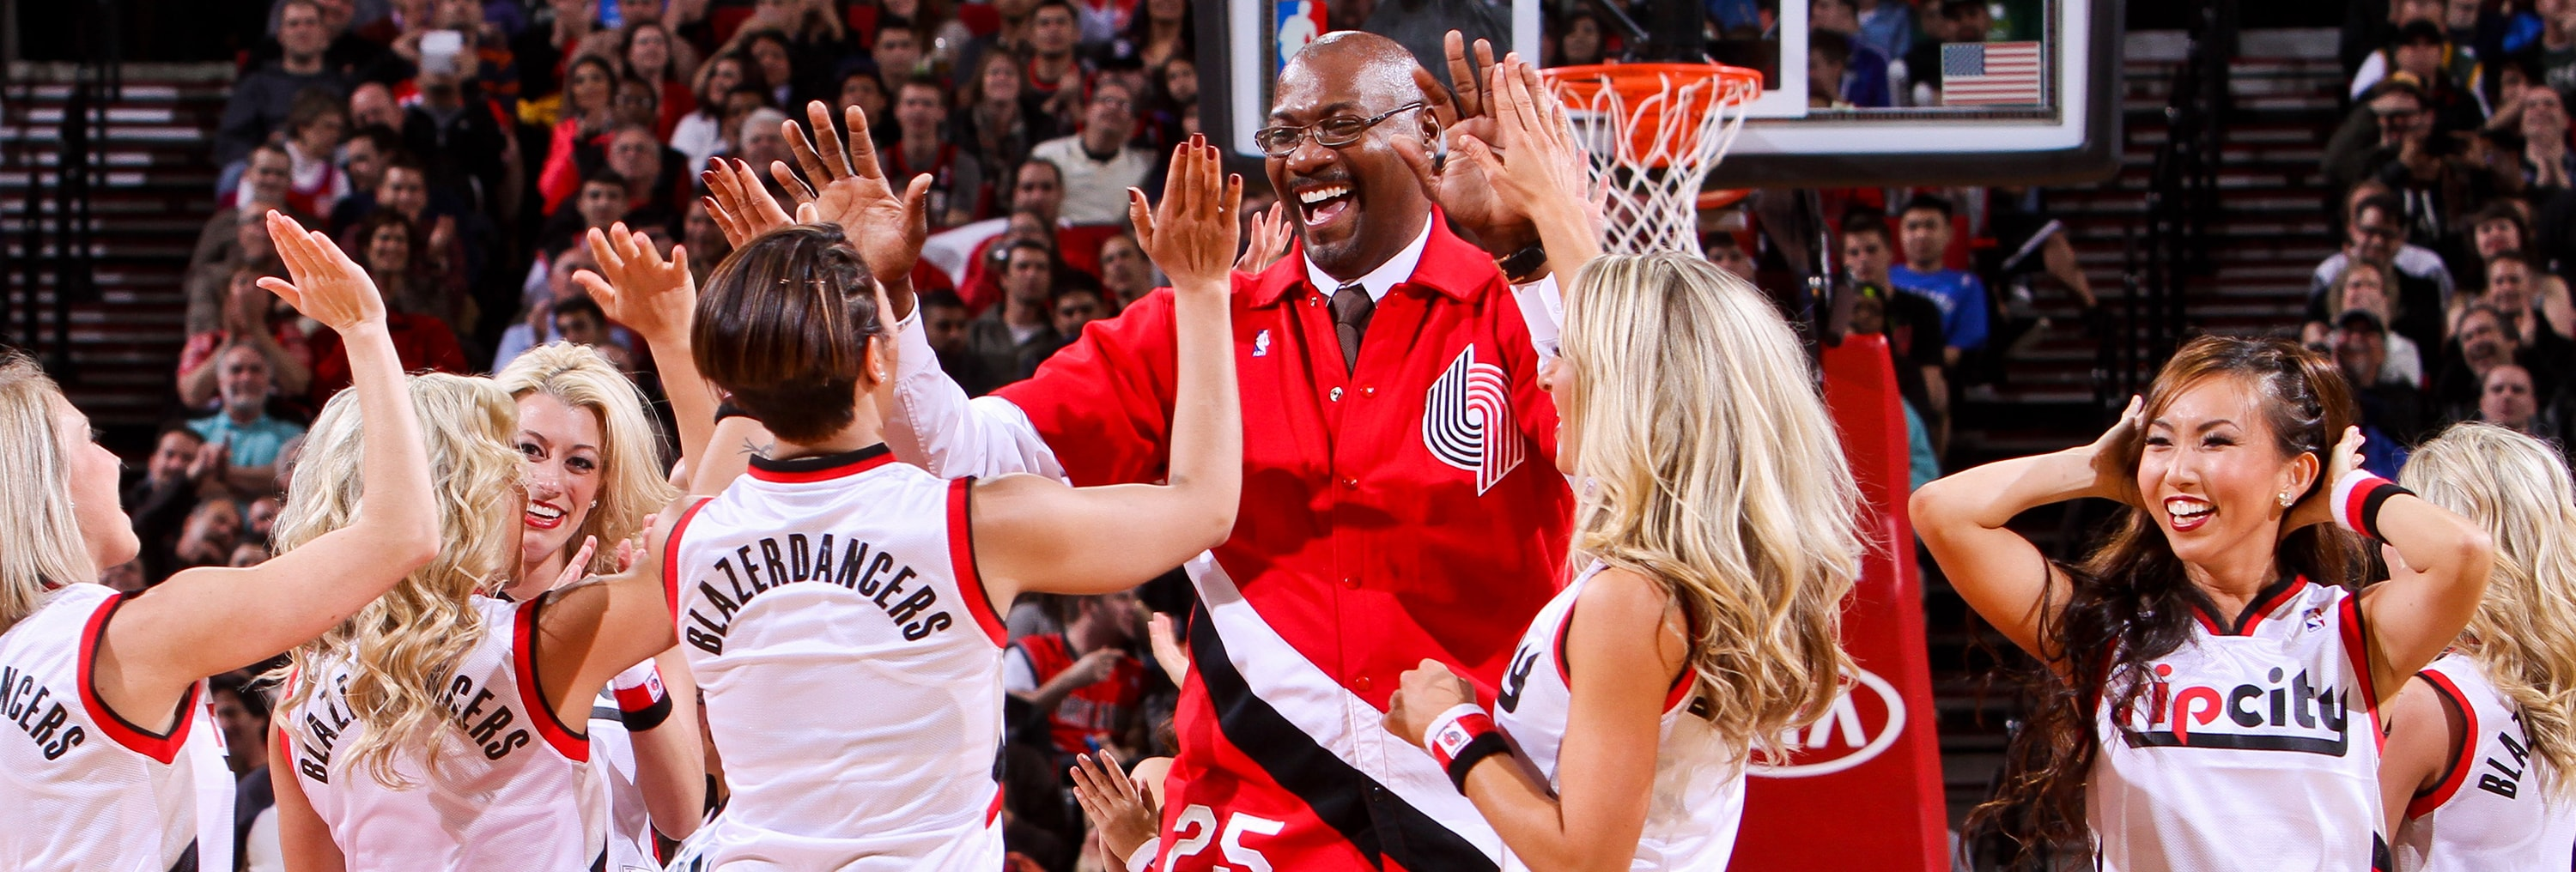 VIDEO: Jerome Kersey's Legacy Lives On